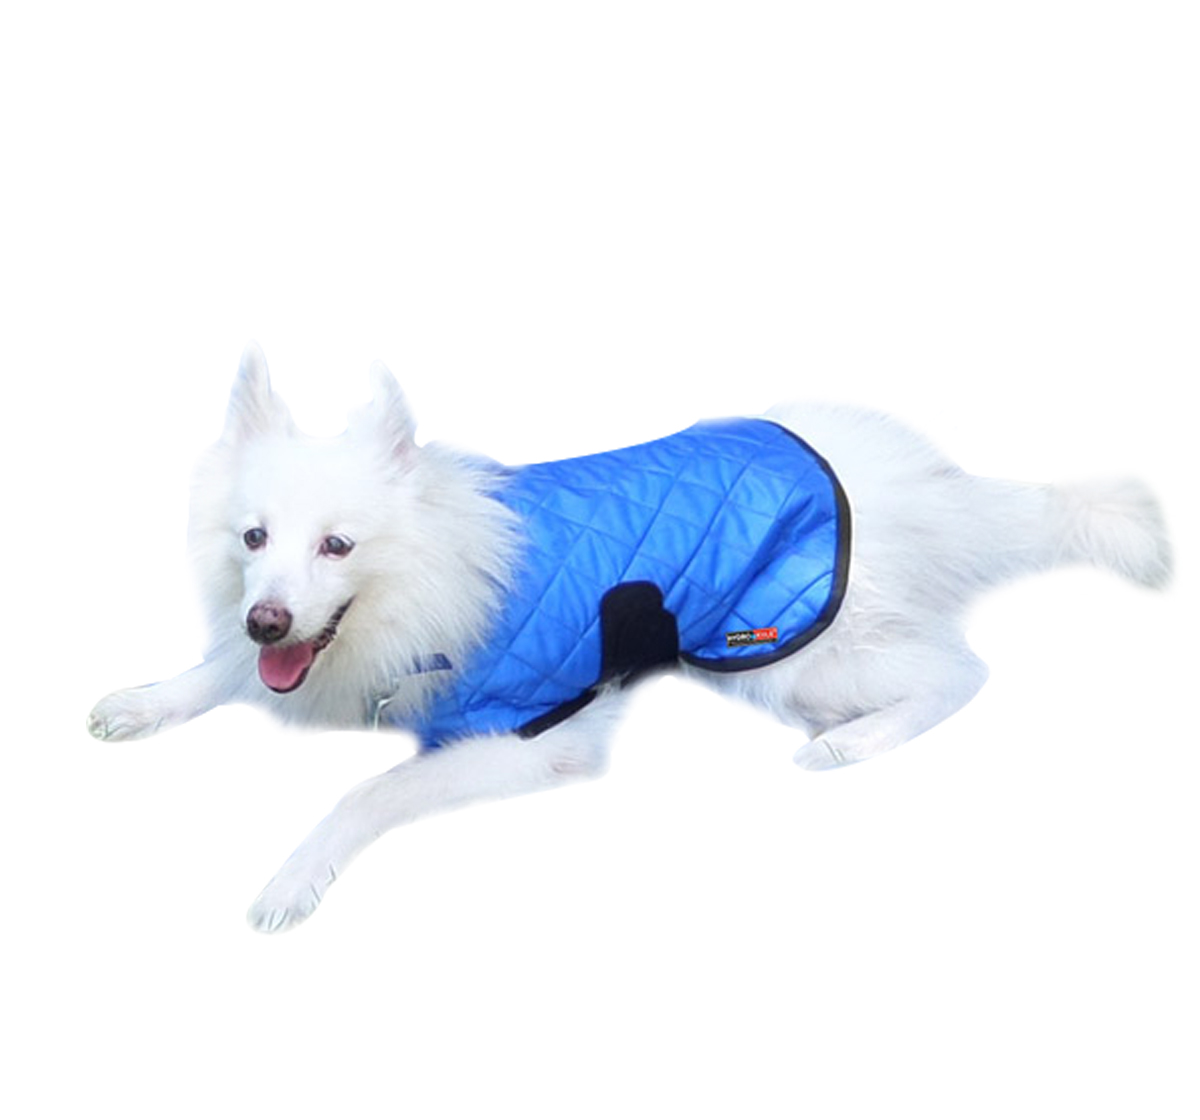 Hydro Kyle Cooling Coat For Dog Blue - Xsmall